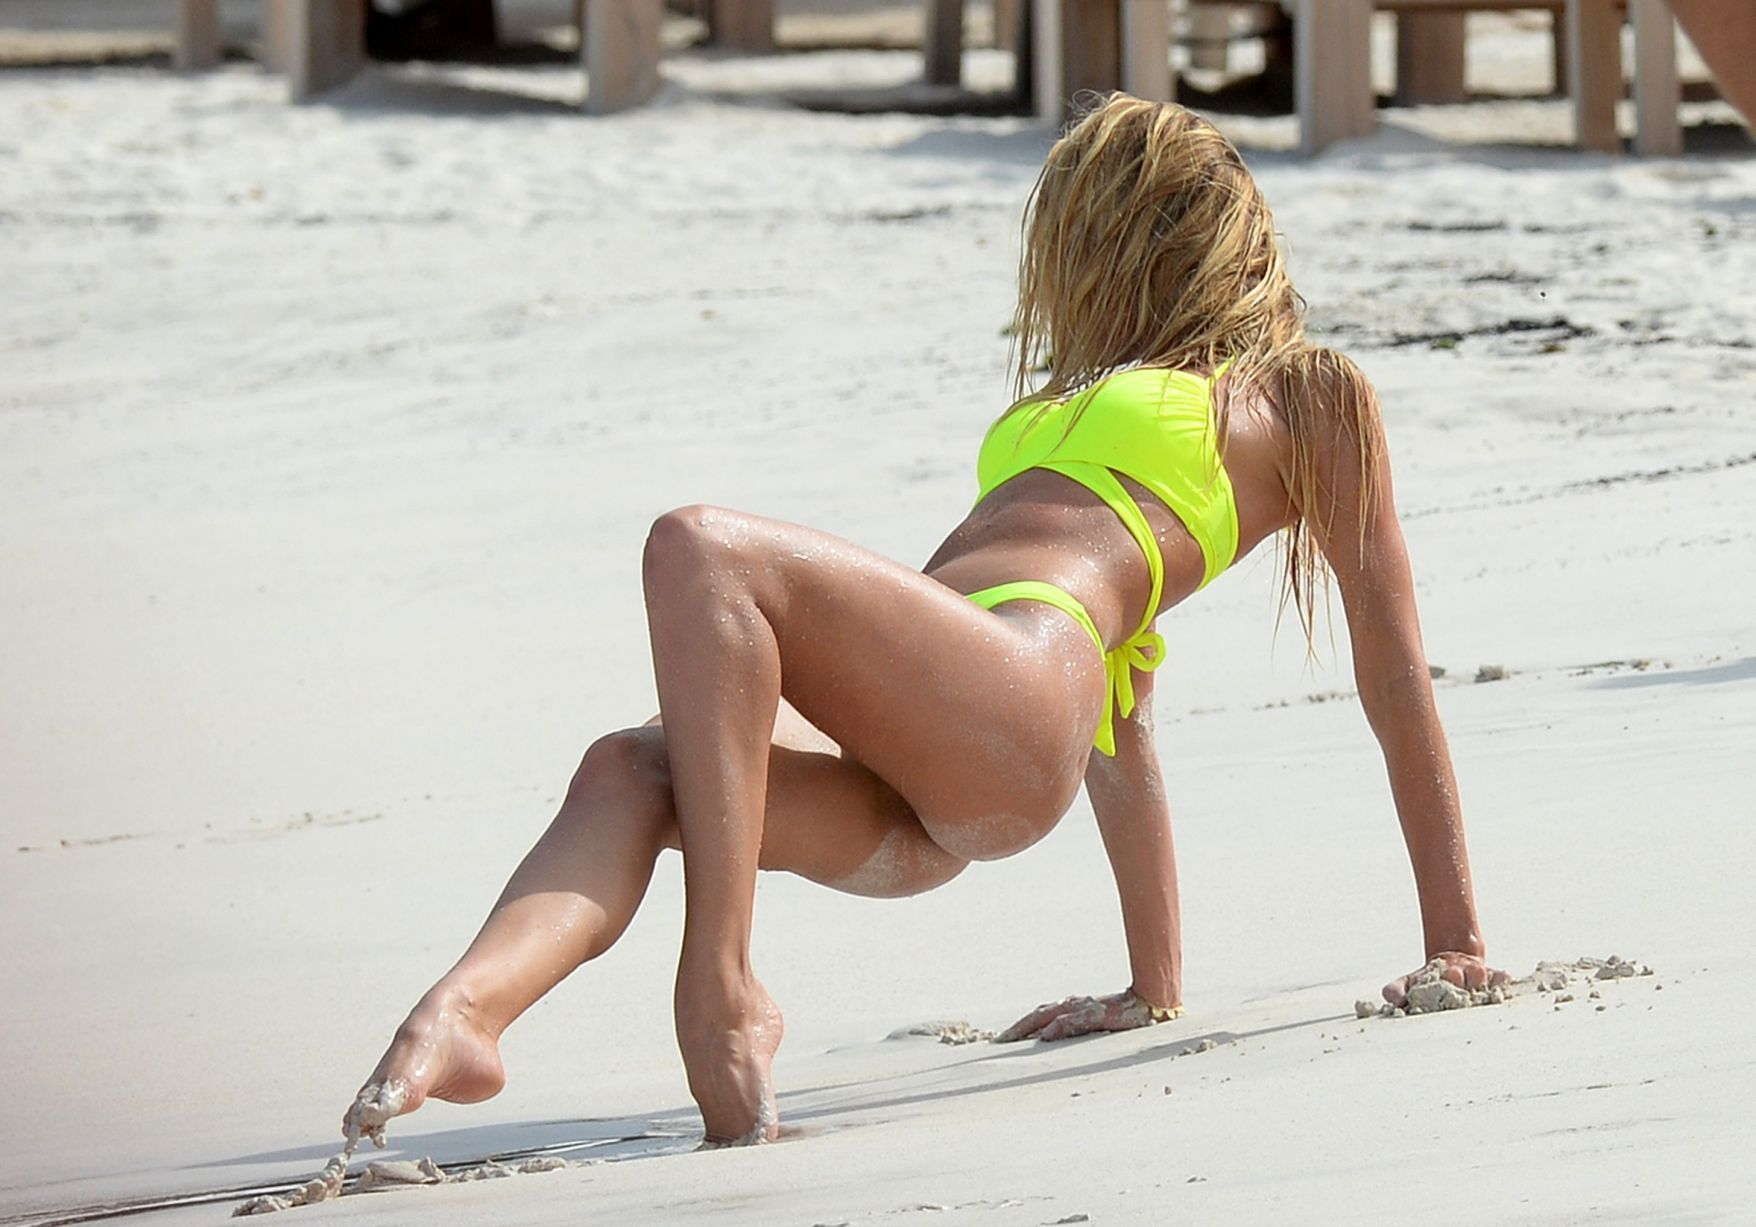 Candice Swanepoel sexy nude pic